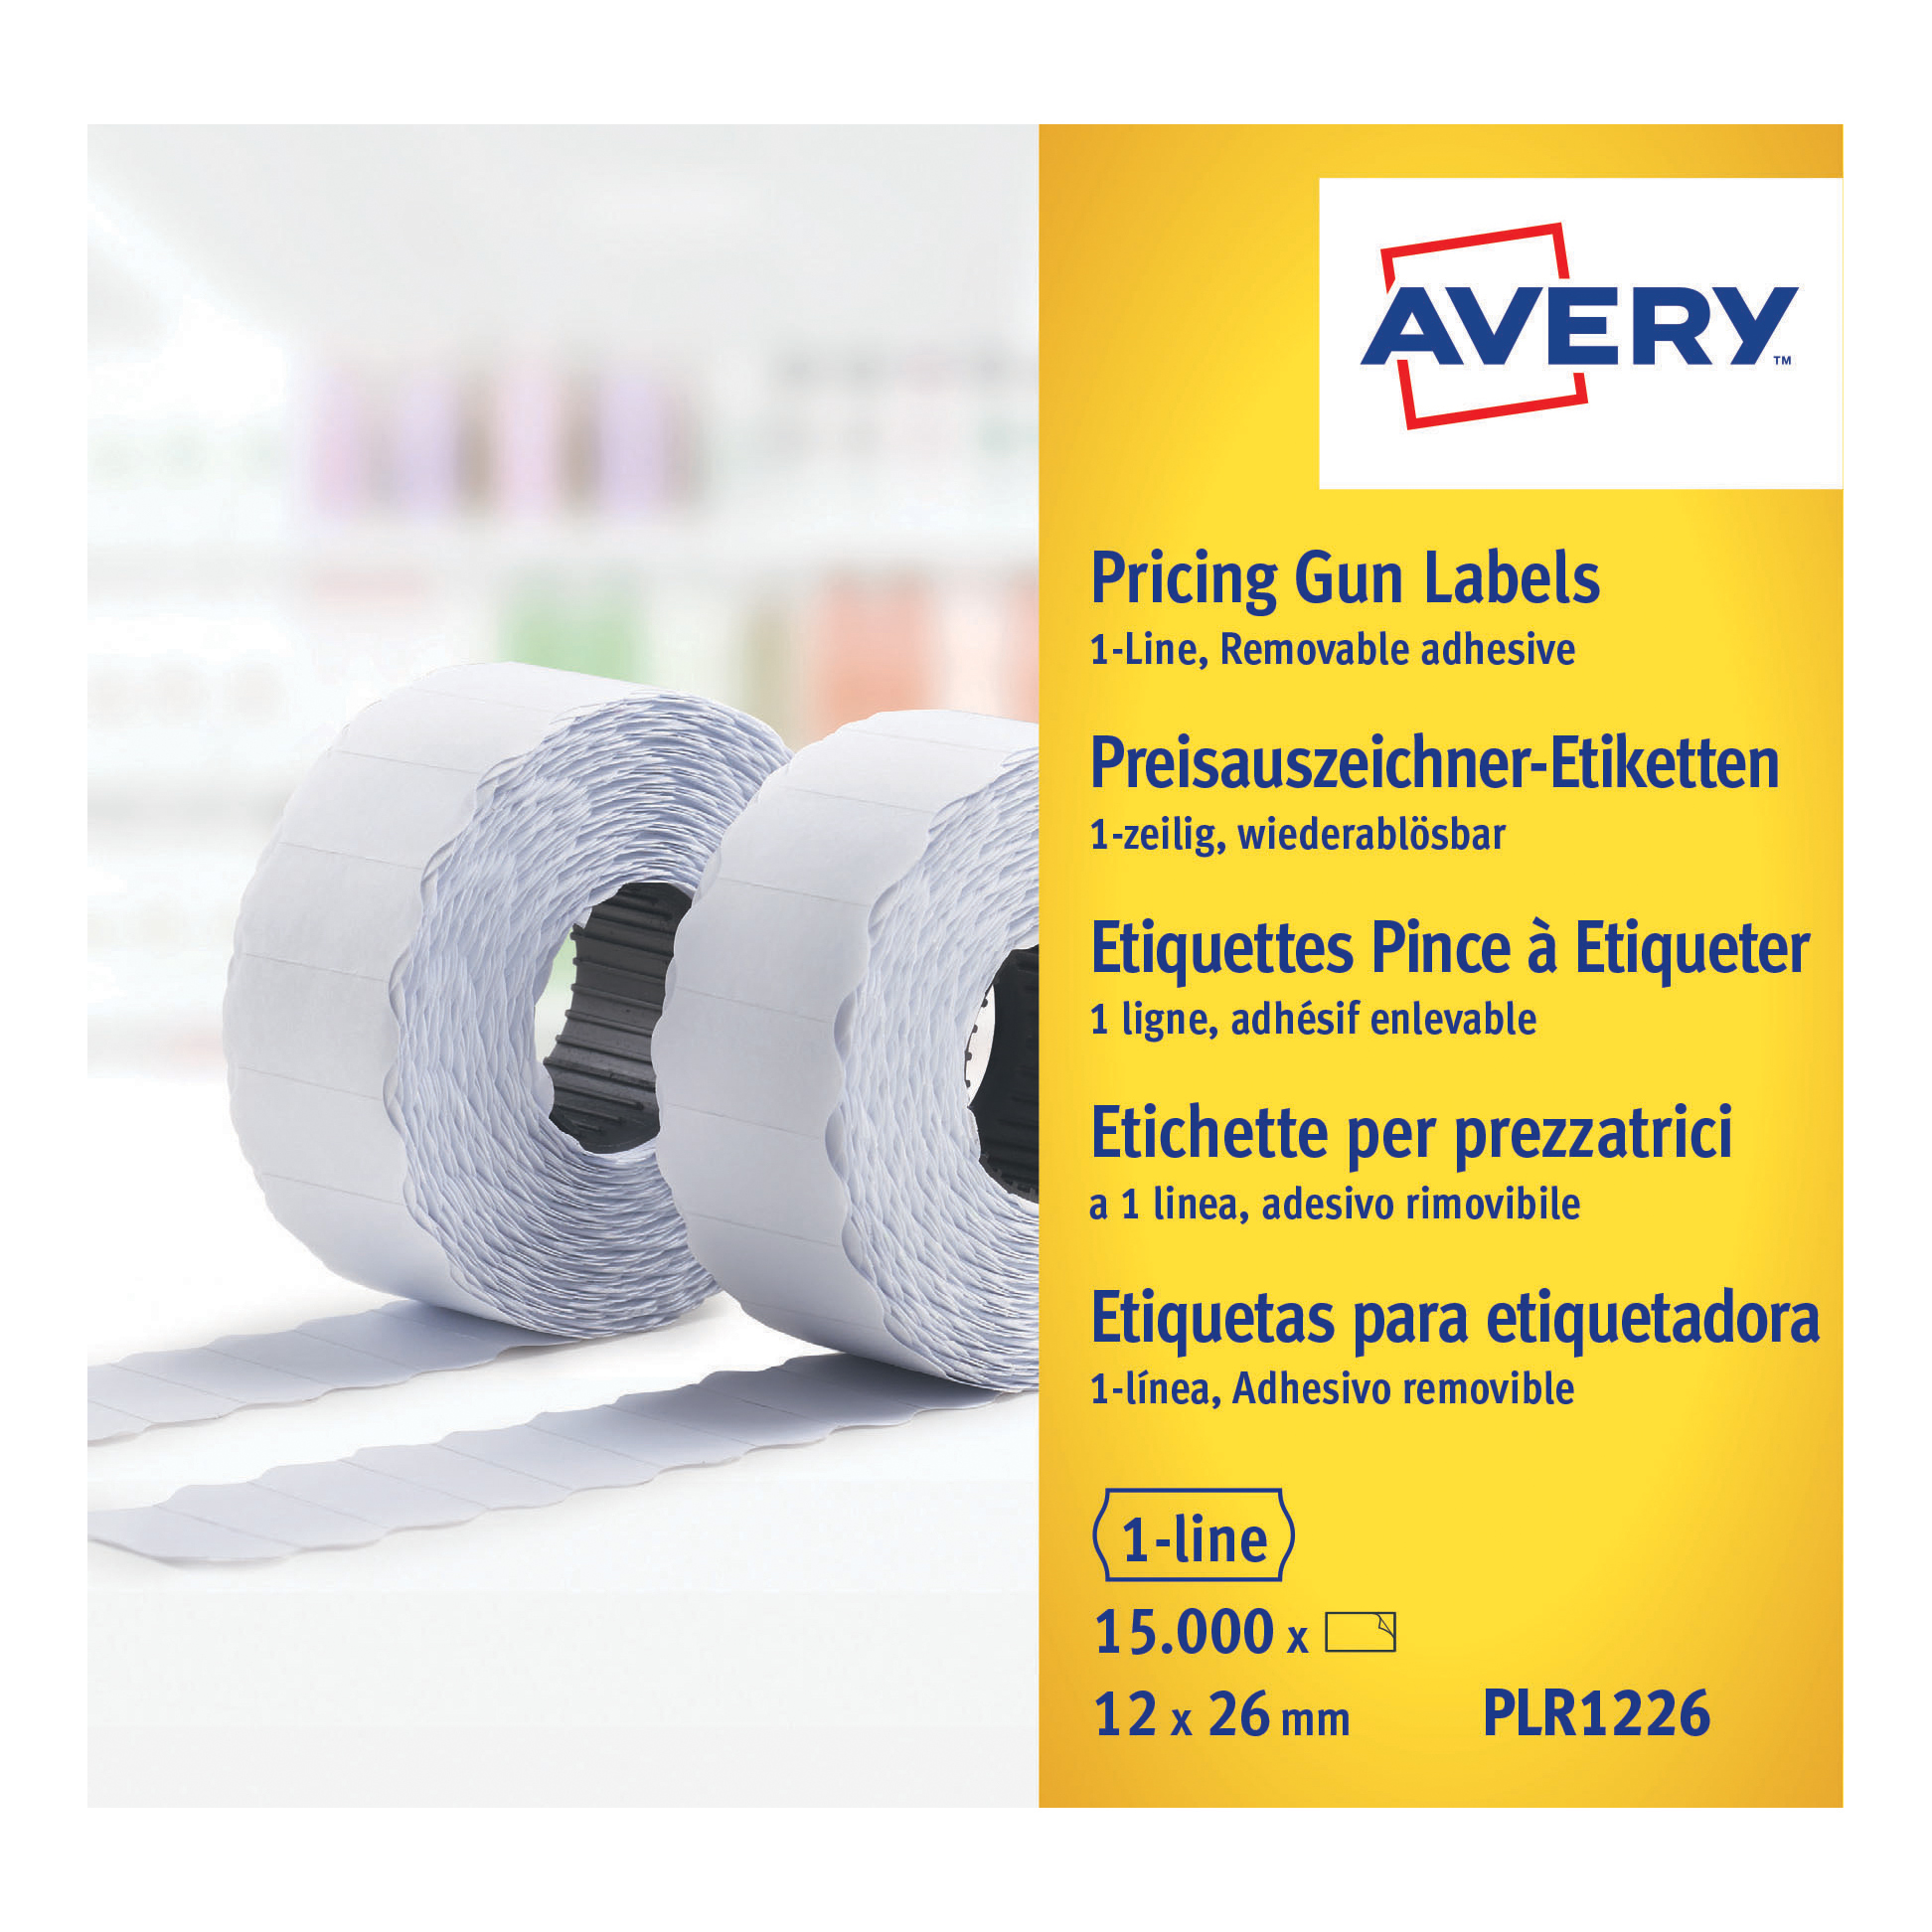 For Labelling Guns Avery Labels for Labelling Gun 1-Line Removable White 12x26mm 1500 per Roll Ref PLR1226 Pack 10